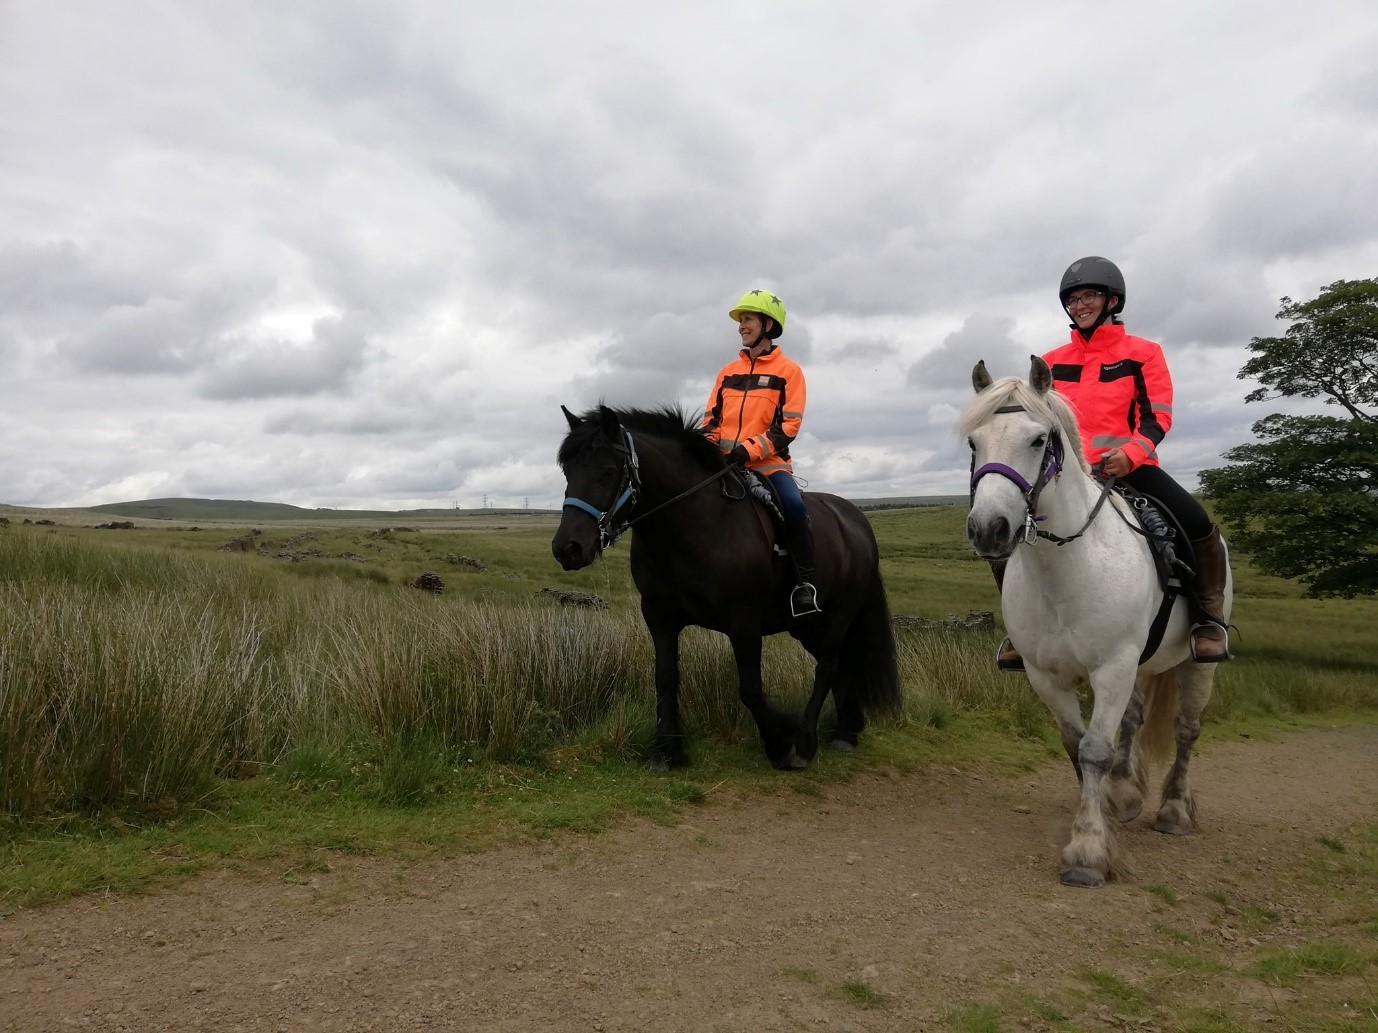 Peers Clough Pack Horses for horse riding in Rossendale page on the Visit Rossendale website